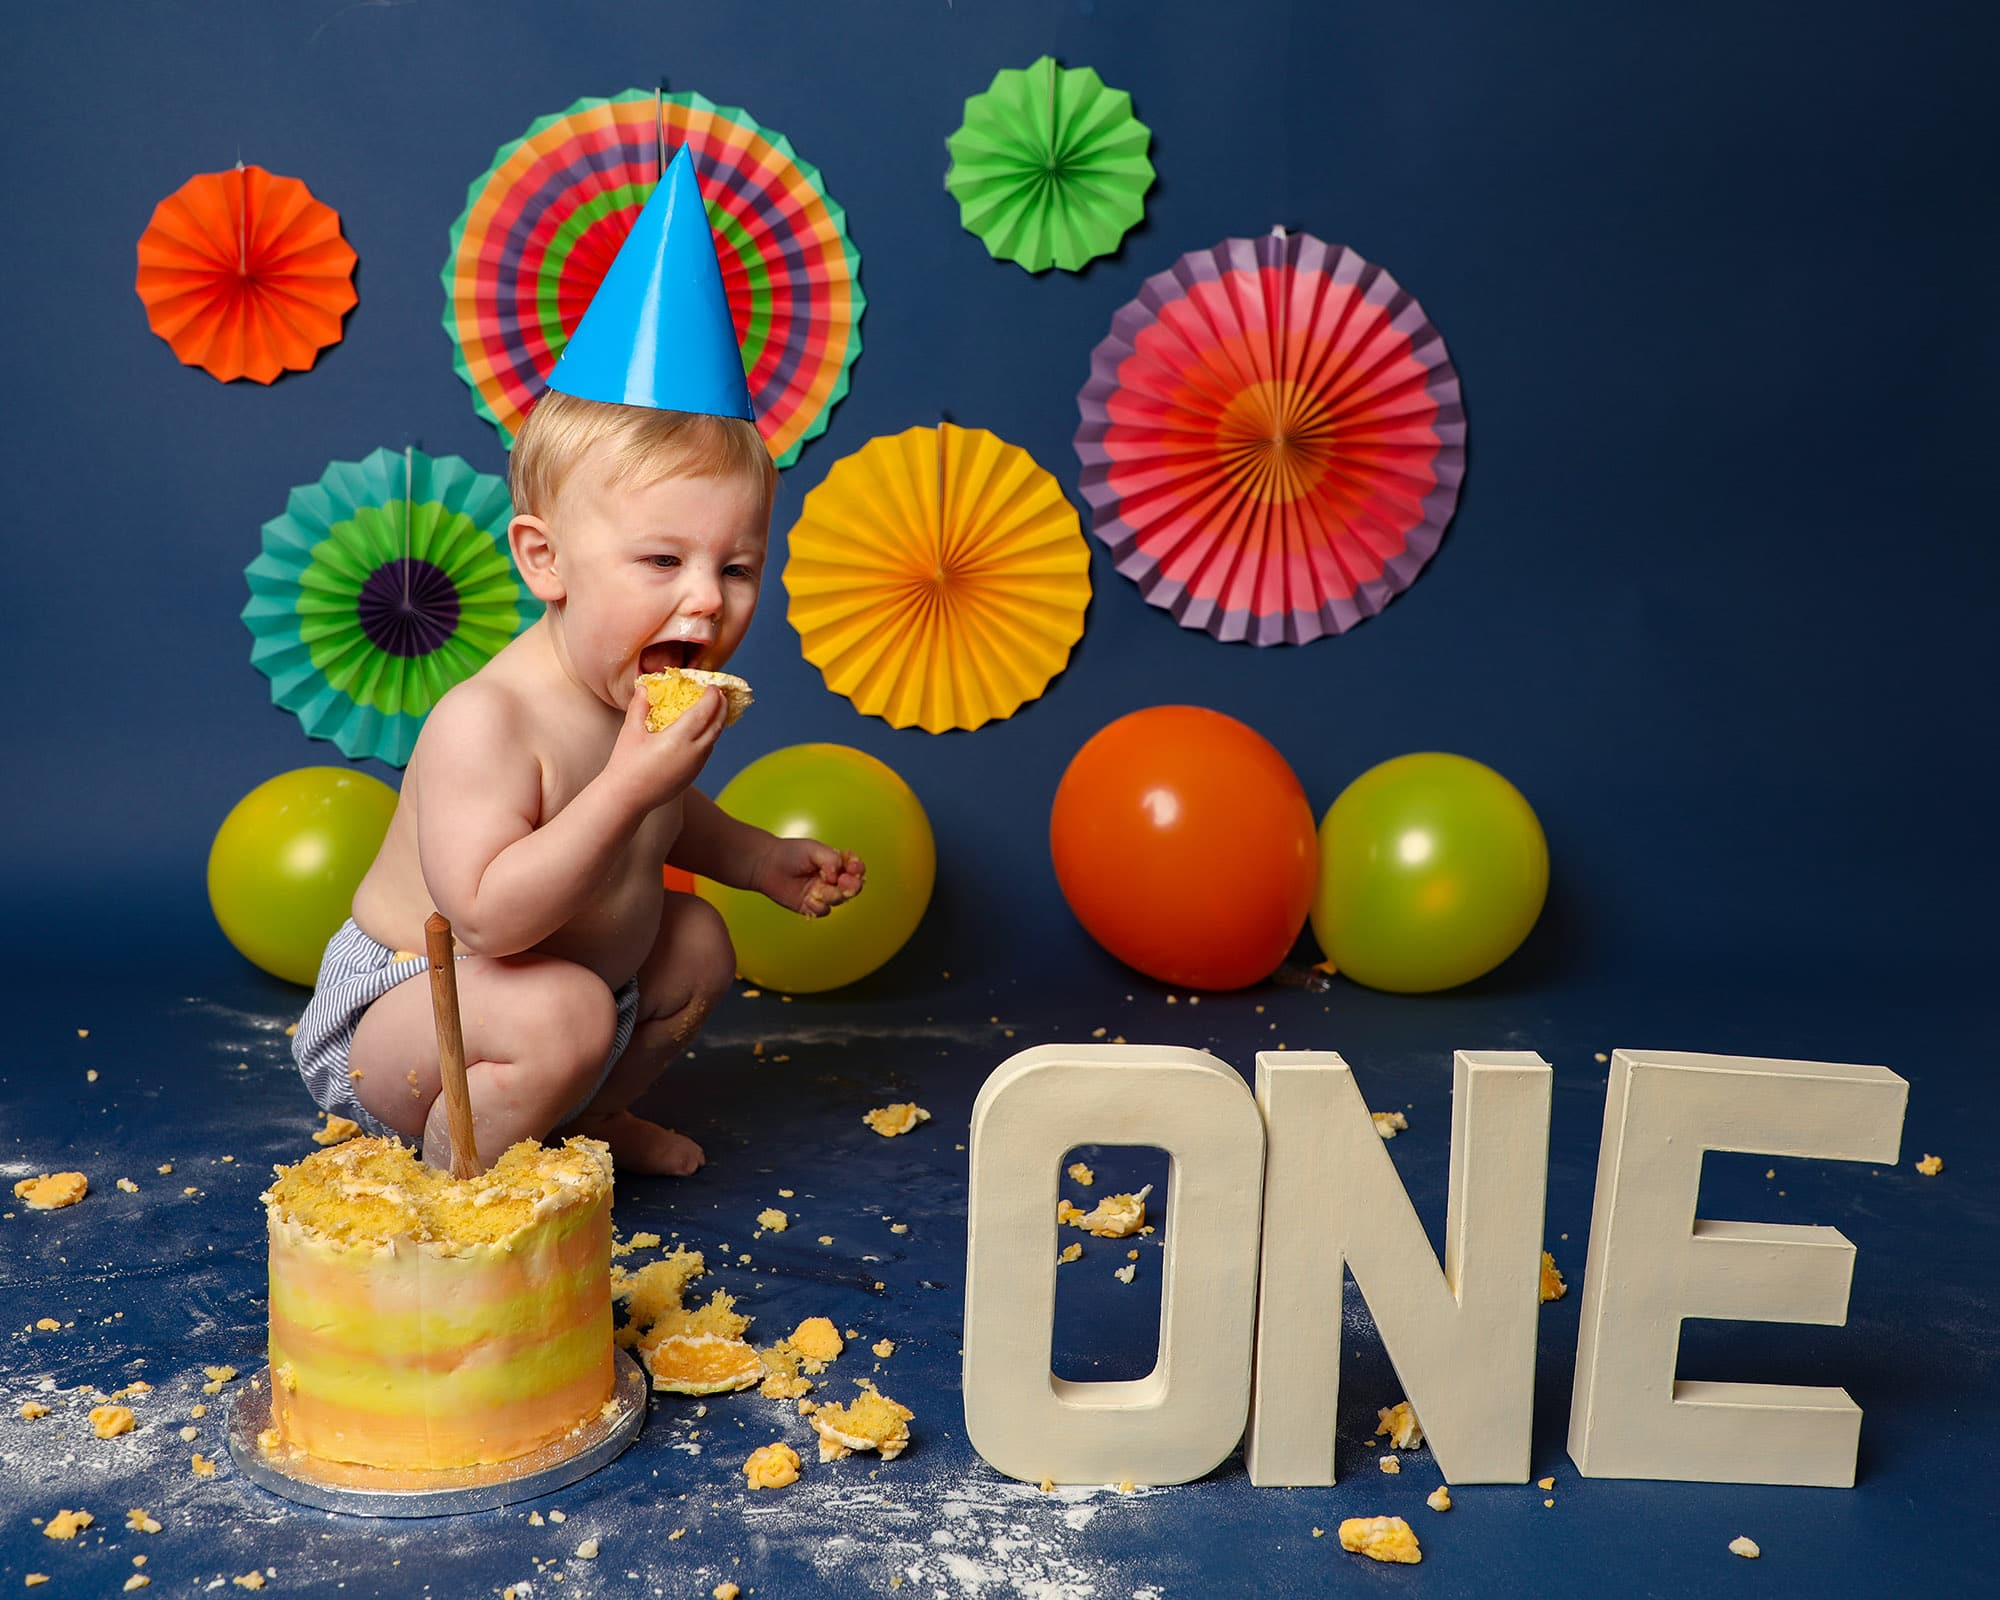 Glasgow studio photoshoot for 1st birthday cakesmash. Baby boy wearing blue party hat eating cake on bright & colourful backdrop of primary colours